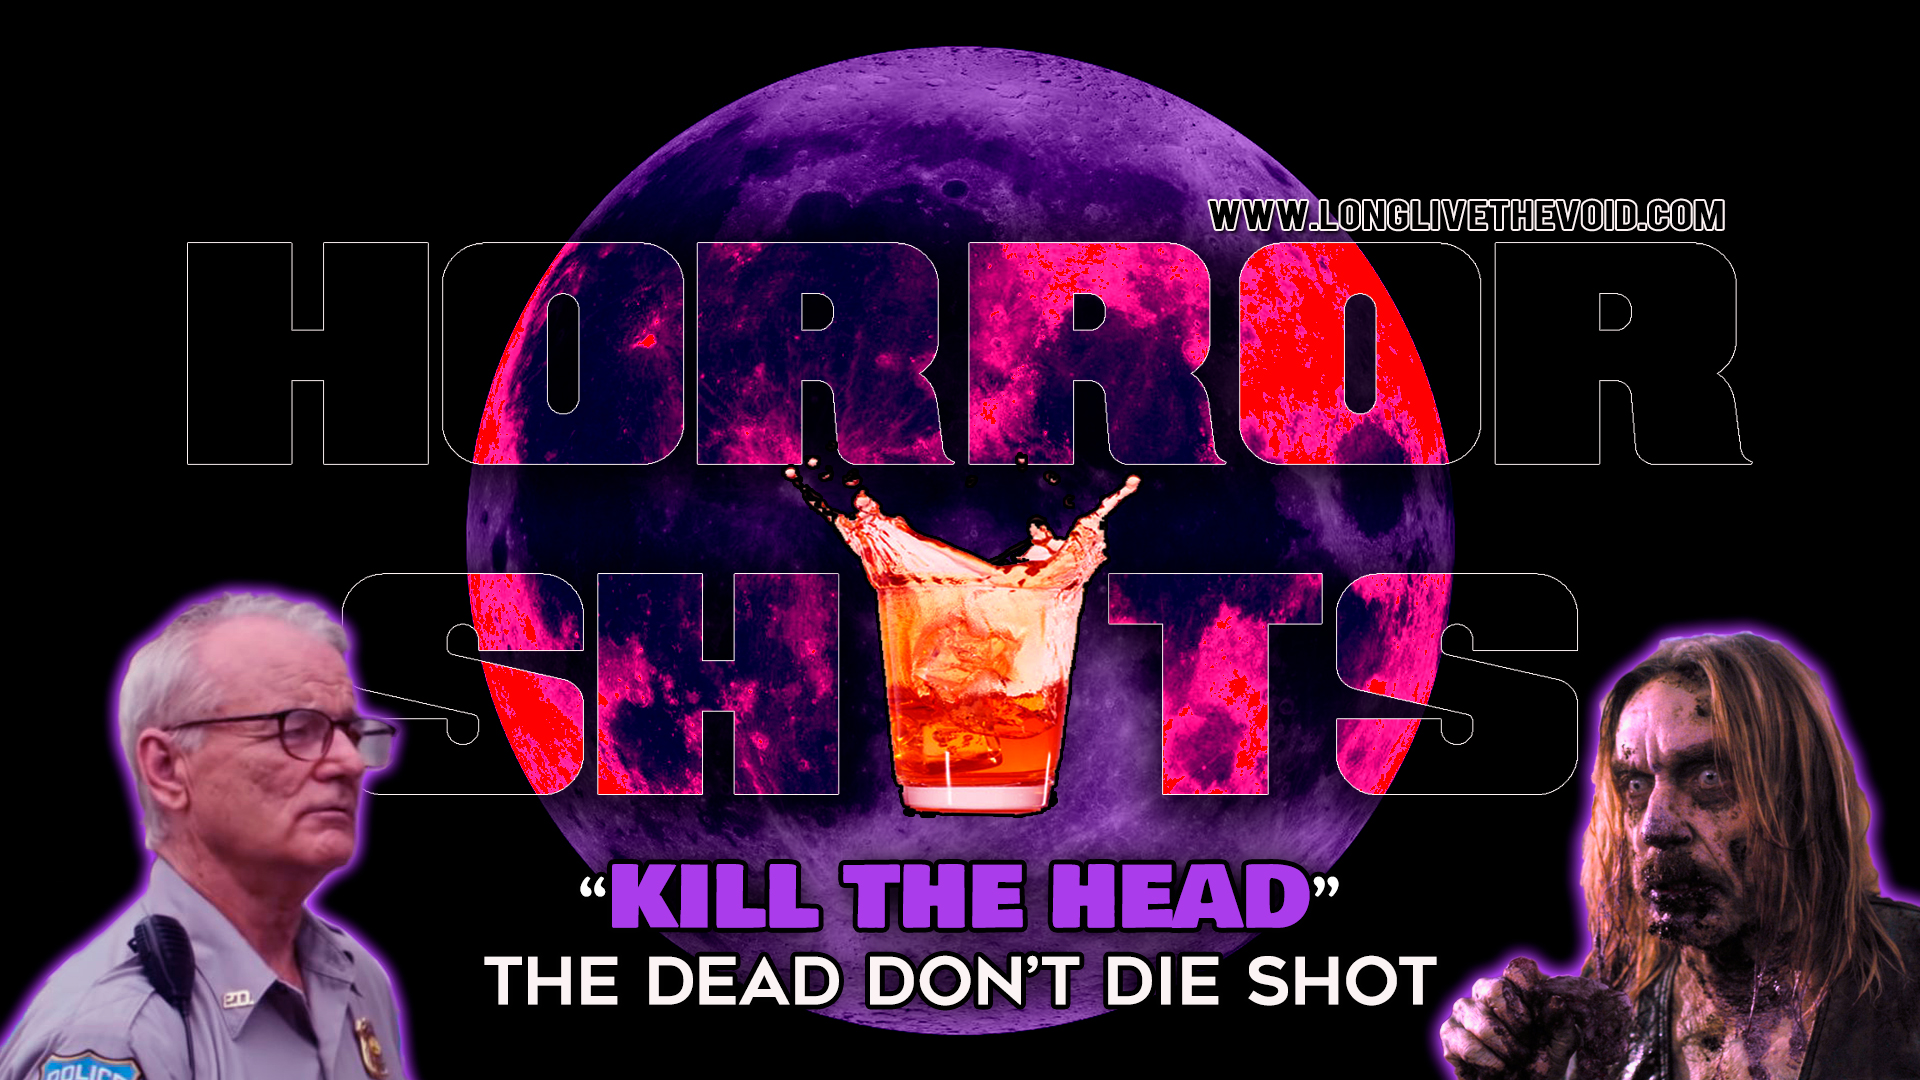 Kill-the-head---The-Dead-Don't-Die-Shot.jpg